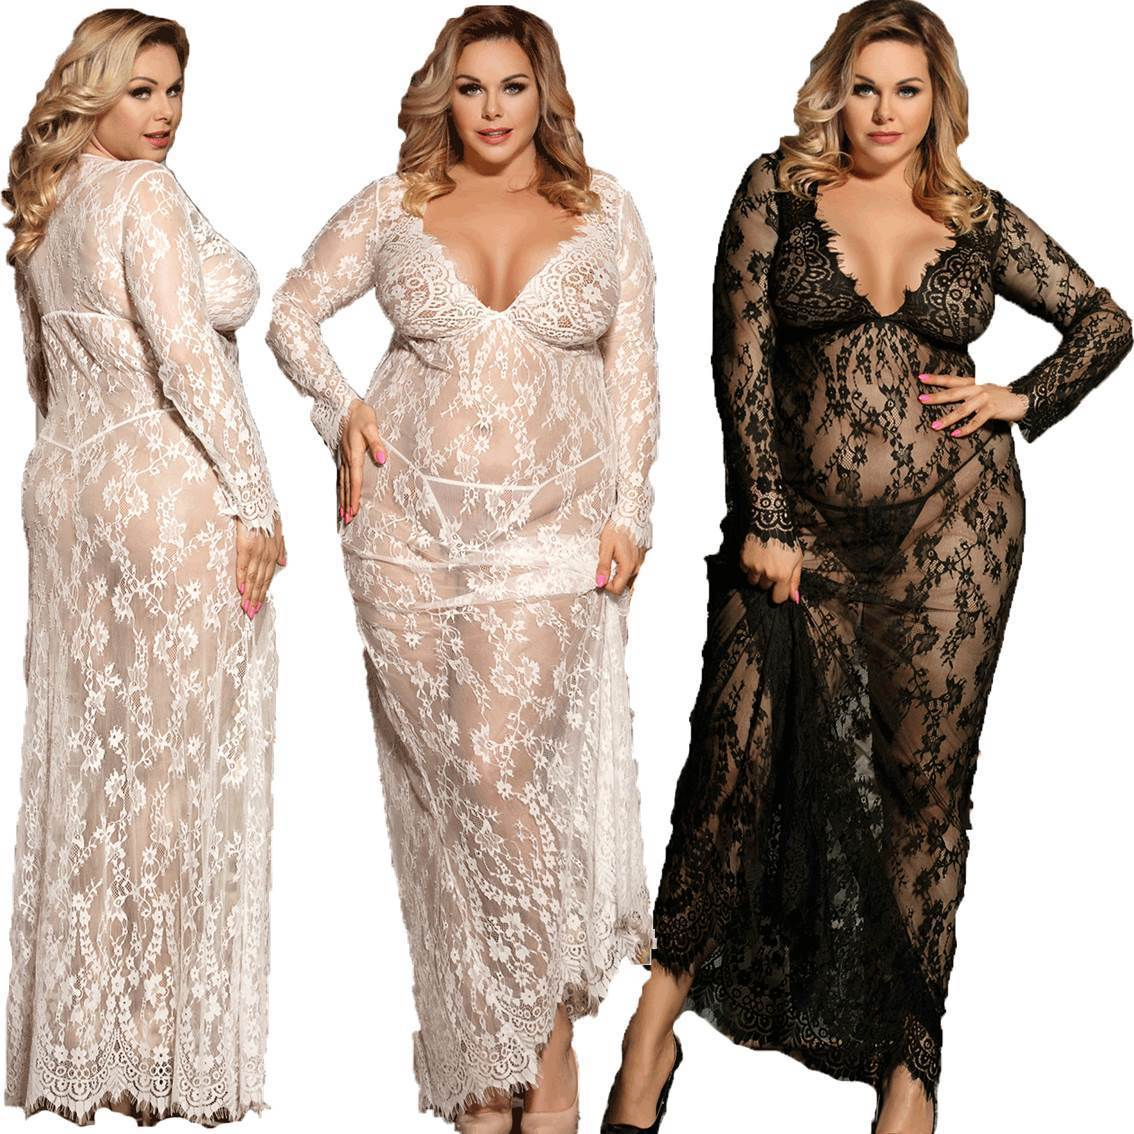 130e559b7 Sexy Lace Long Gown Black White M XL 3XL Plus Size Wedding Sleepwear ...